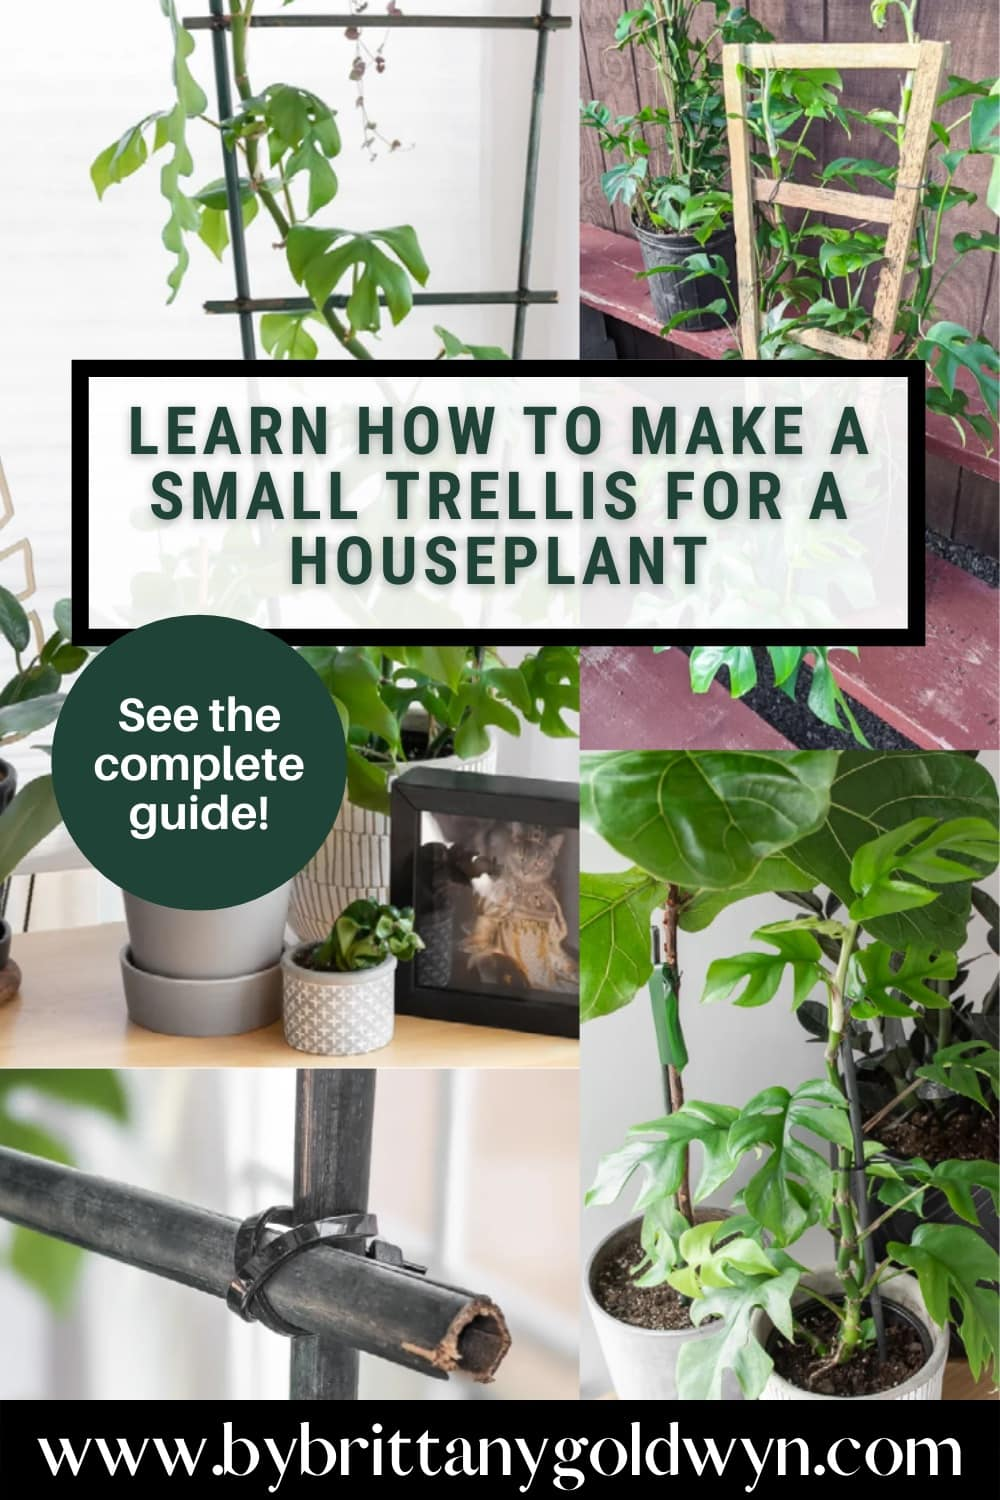 image collage of plants with a diy houseplant trellis and text overlay